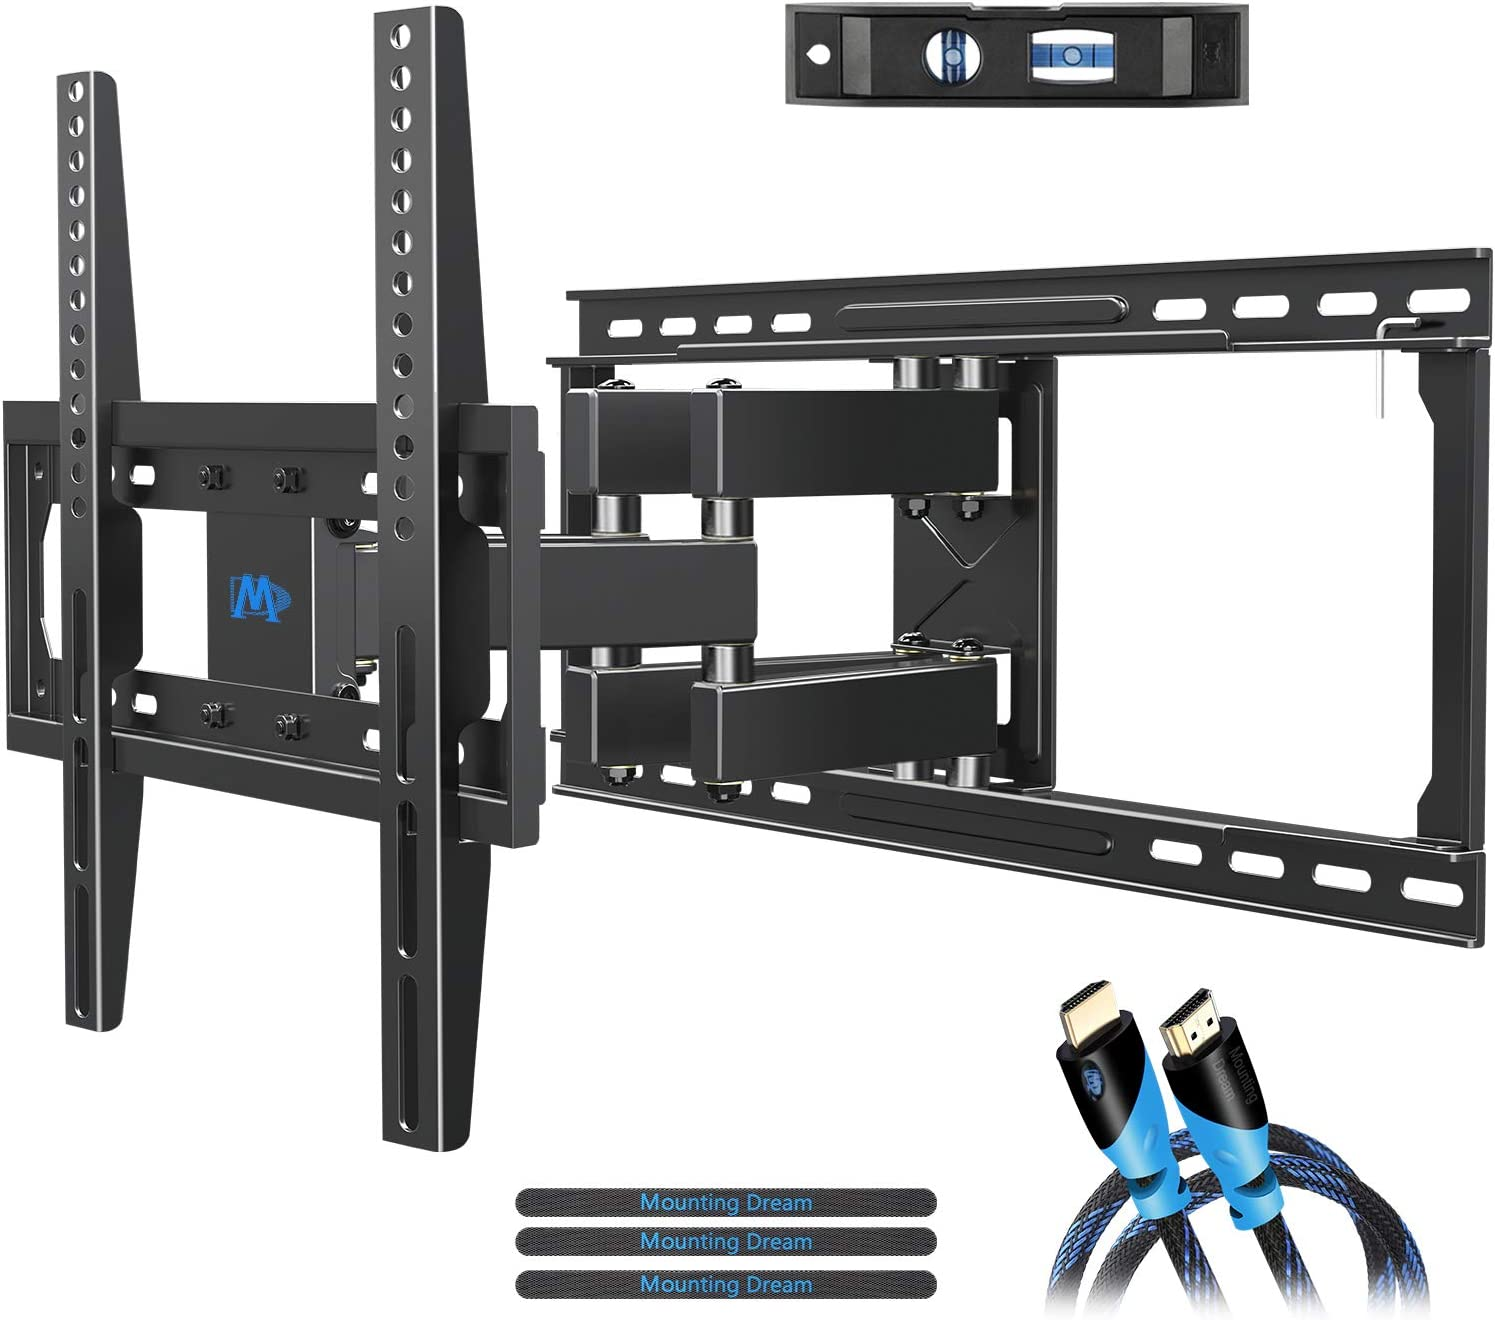 Amazon Com Mounting Dream Tv Mount Full Motion Tv Wall Mounts For 26 55 Inch Some Up To 65 Inch Led Lcd Flat Screen Tv Wall Mount Bracket Up To Vesa 400 X 400mm